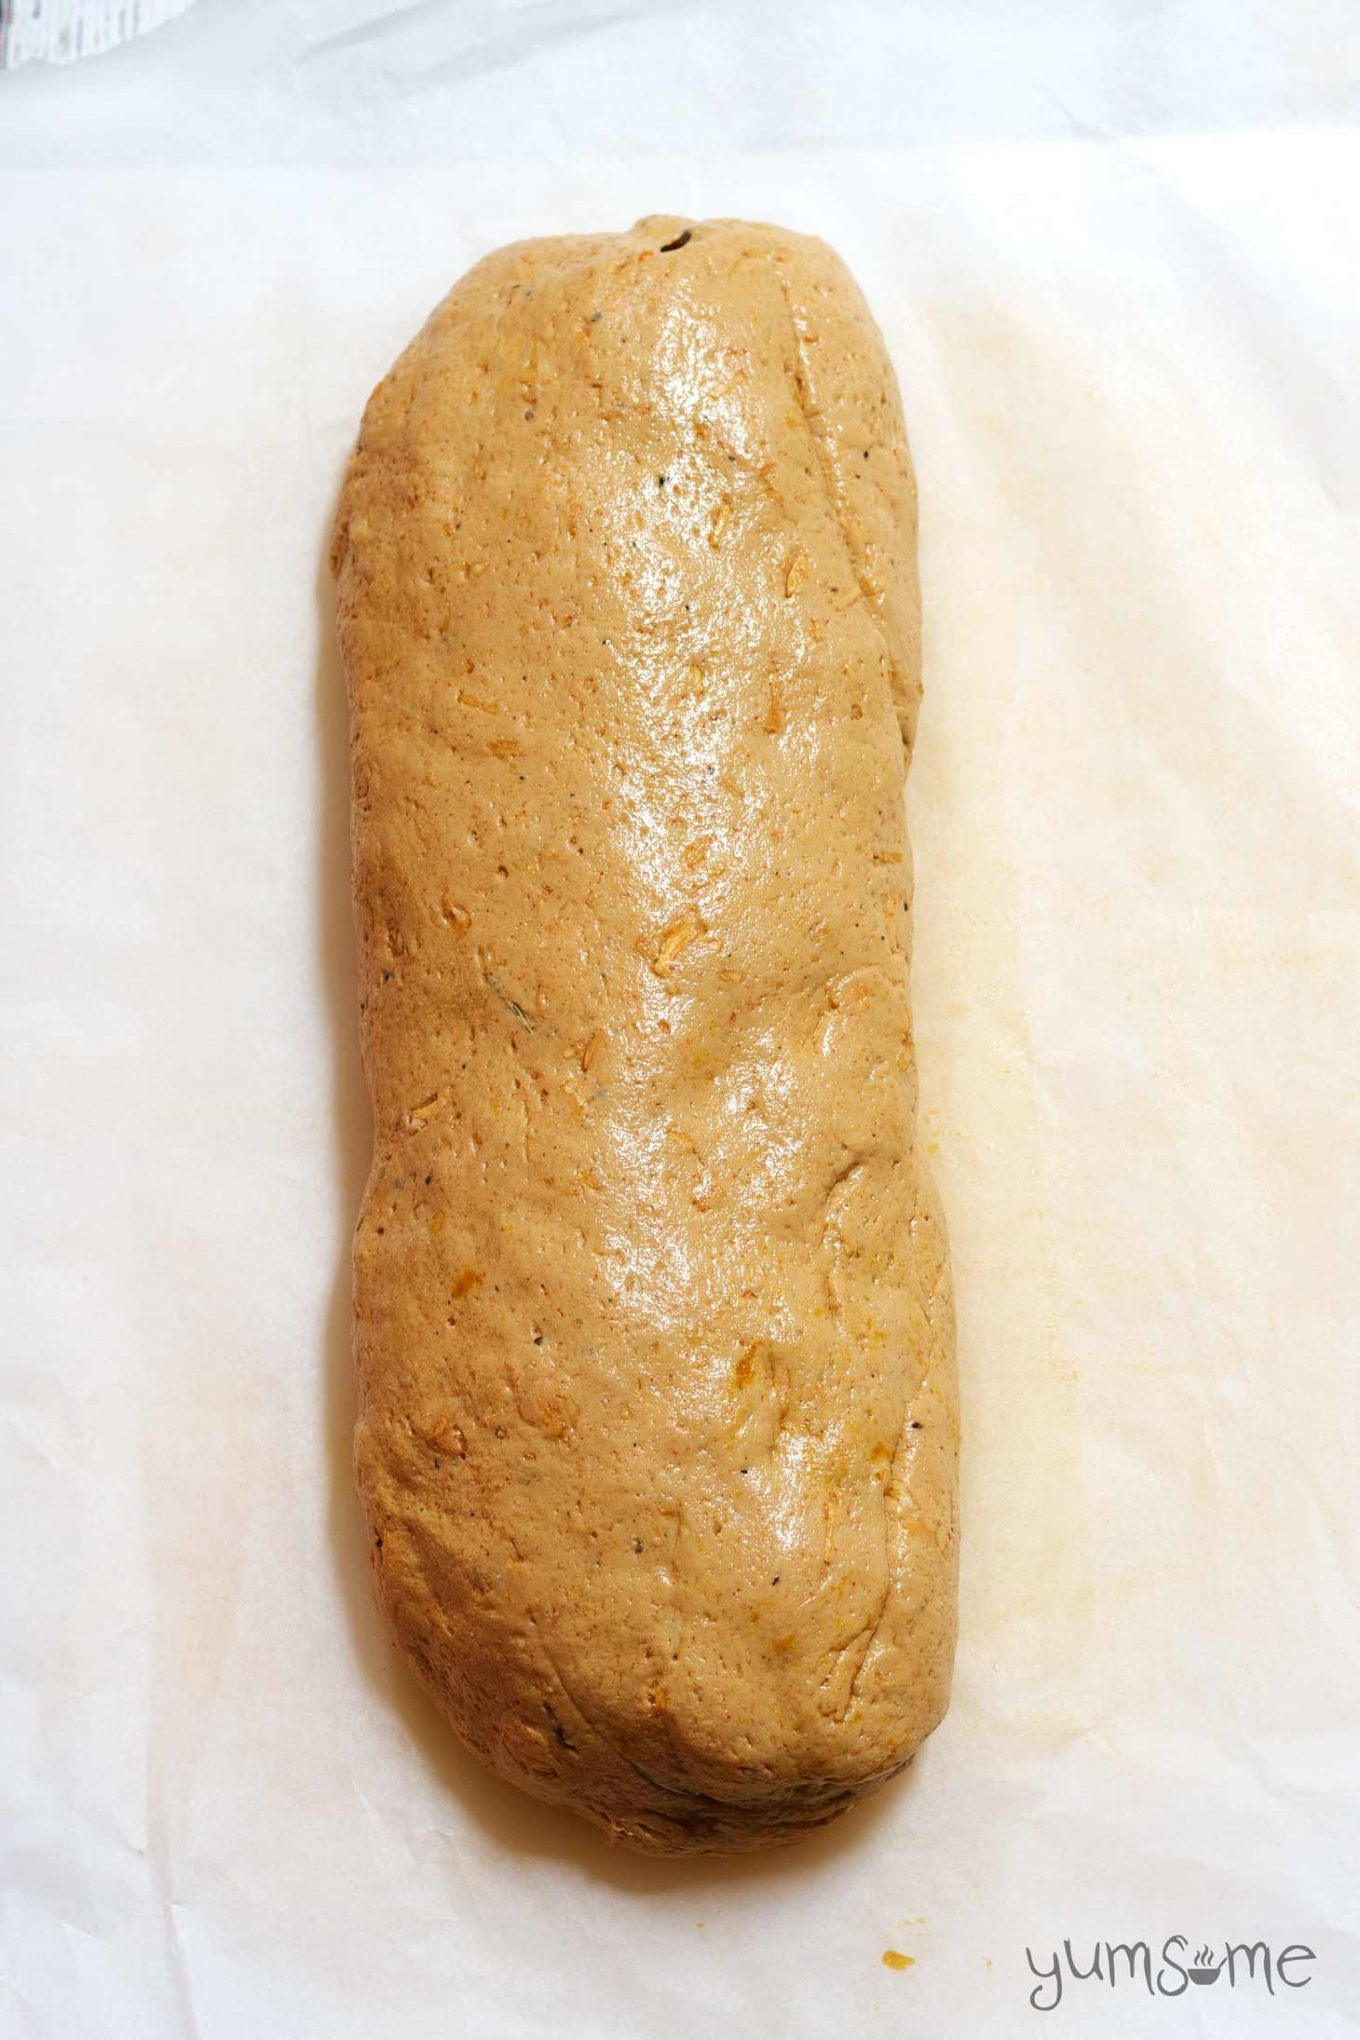 Seitan dough rolled into a large log shape, on a white background.